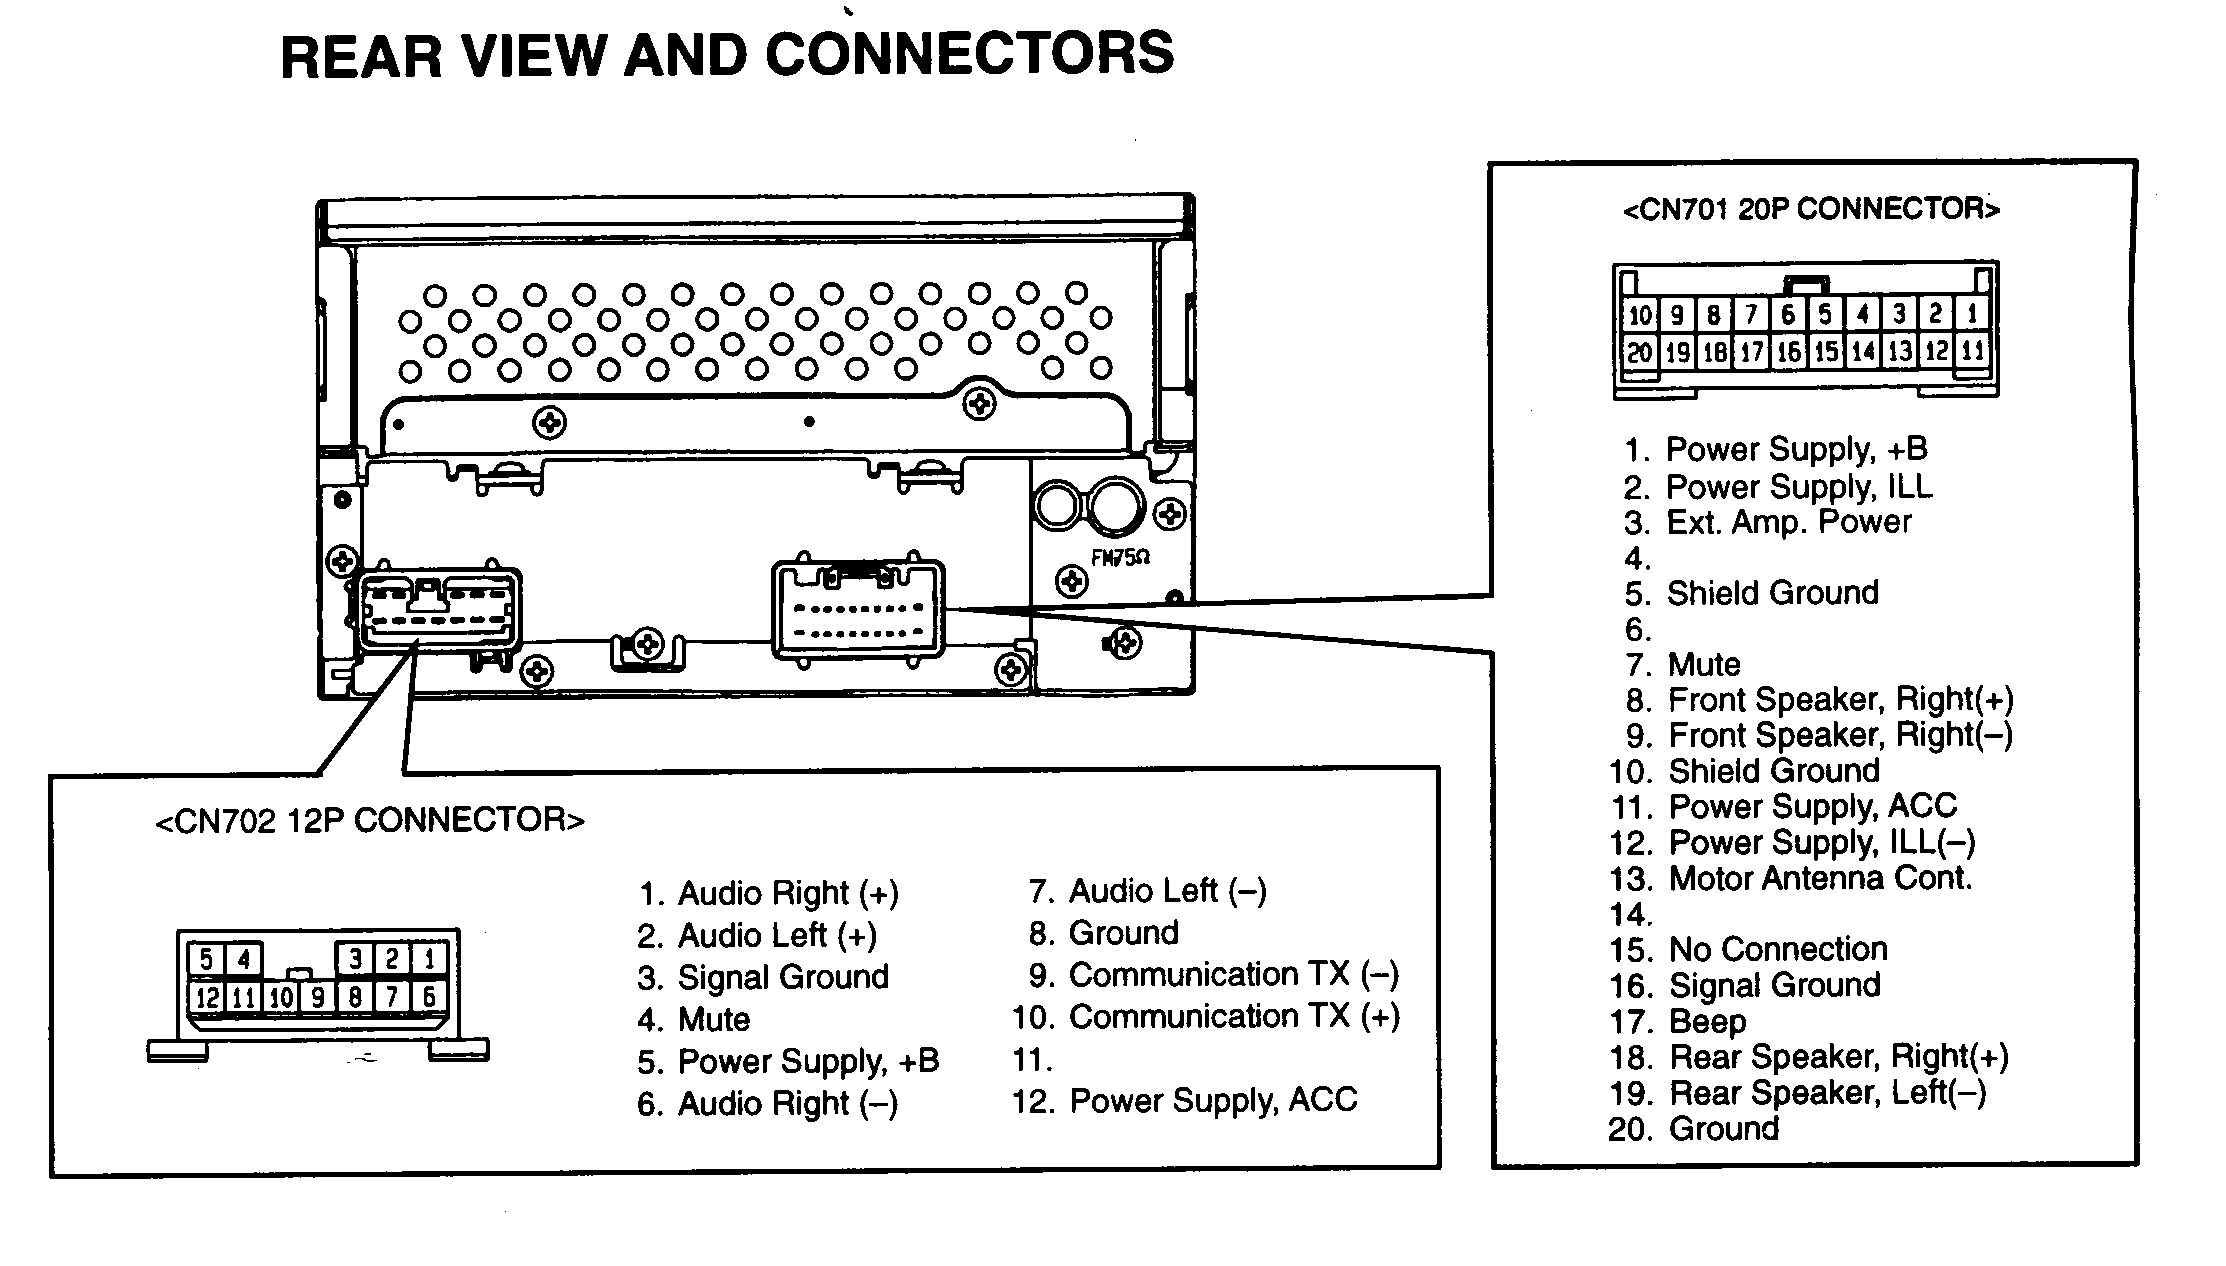 Car Stereo Wiring Diagram with Factory Car Stereo Wiring Diagrams Wiring Diagram Of Car Stereo Wiring Diagram